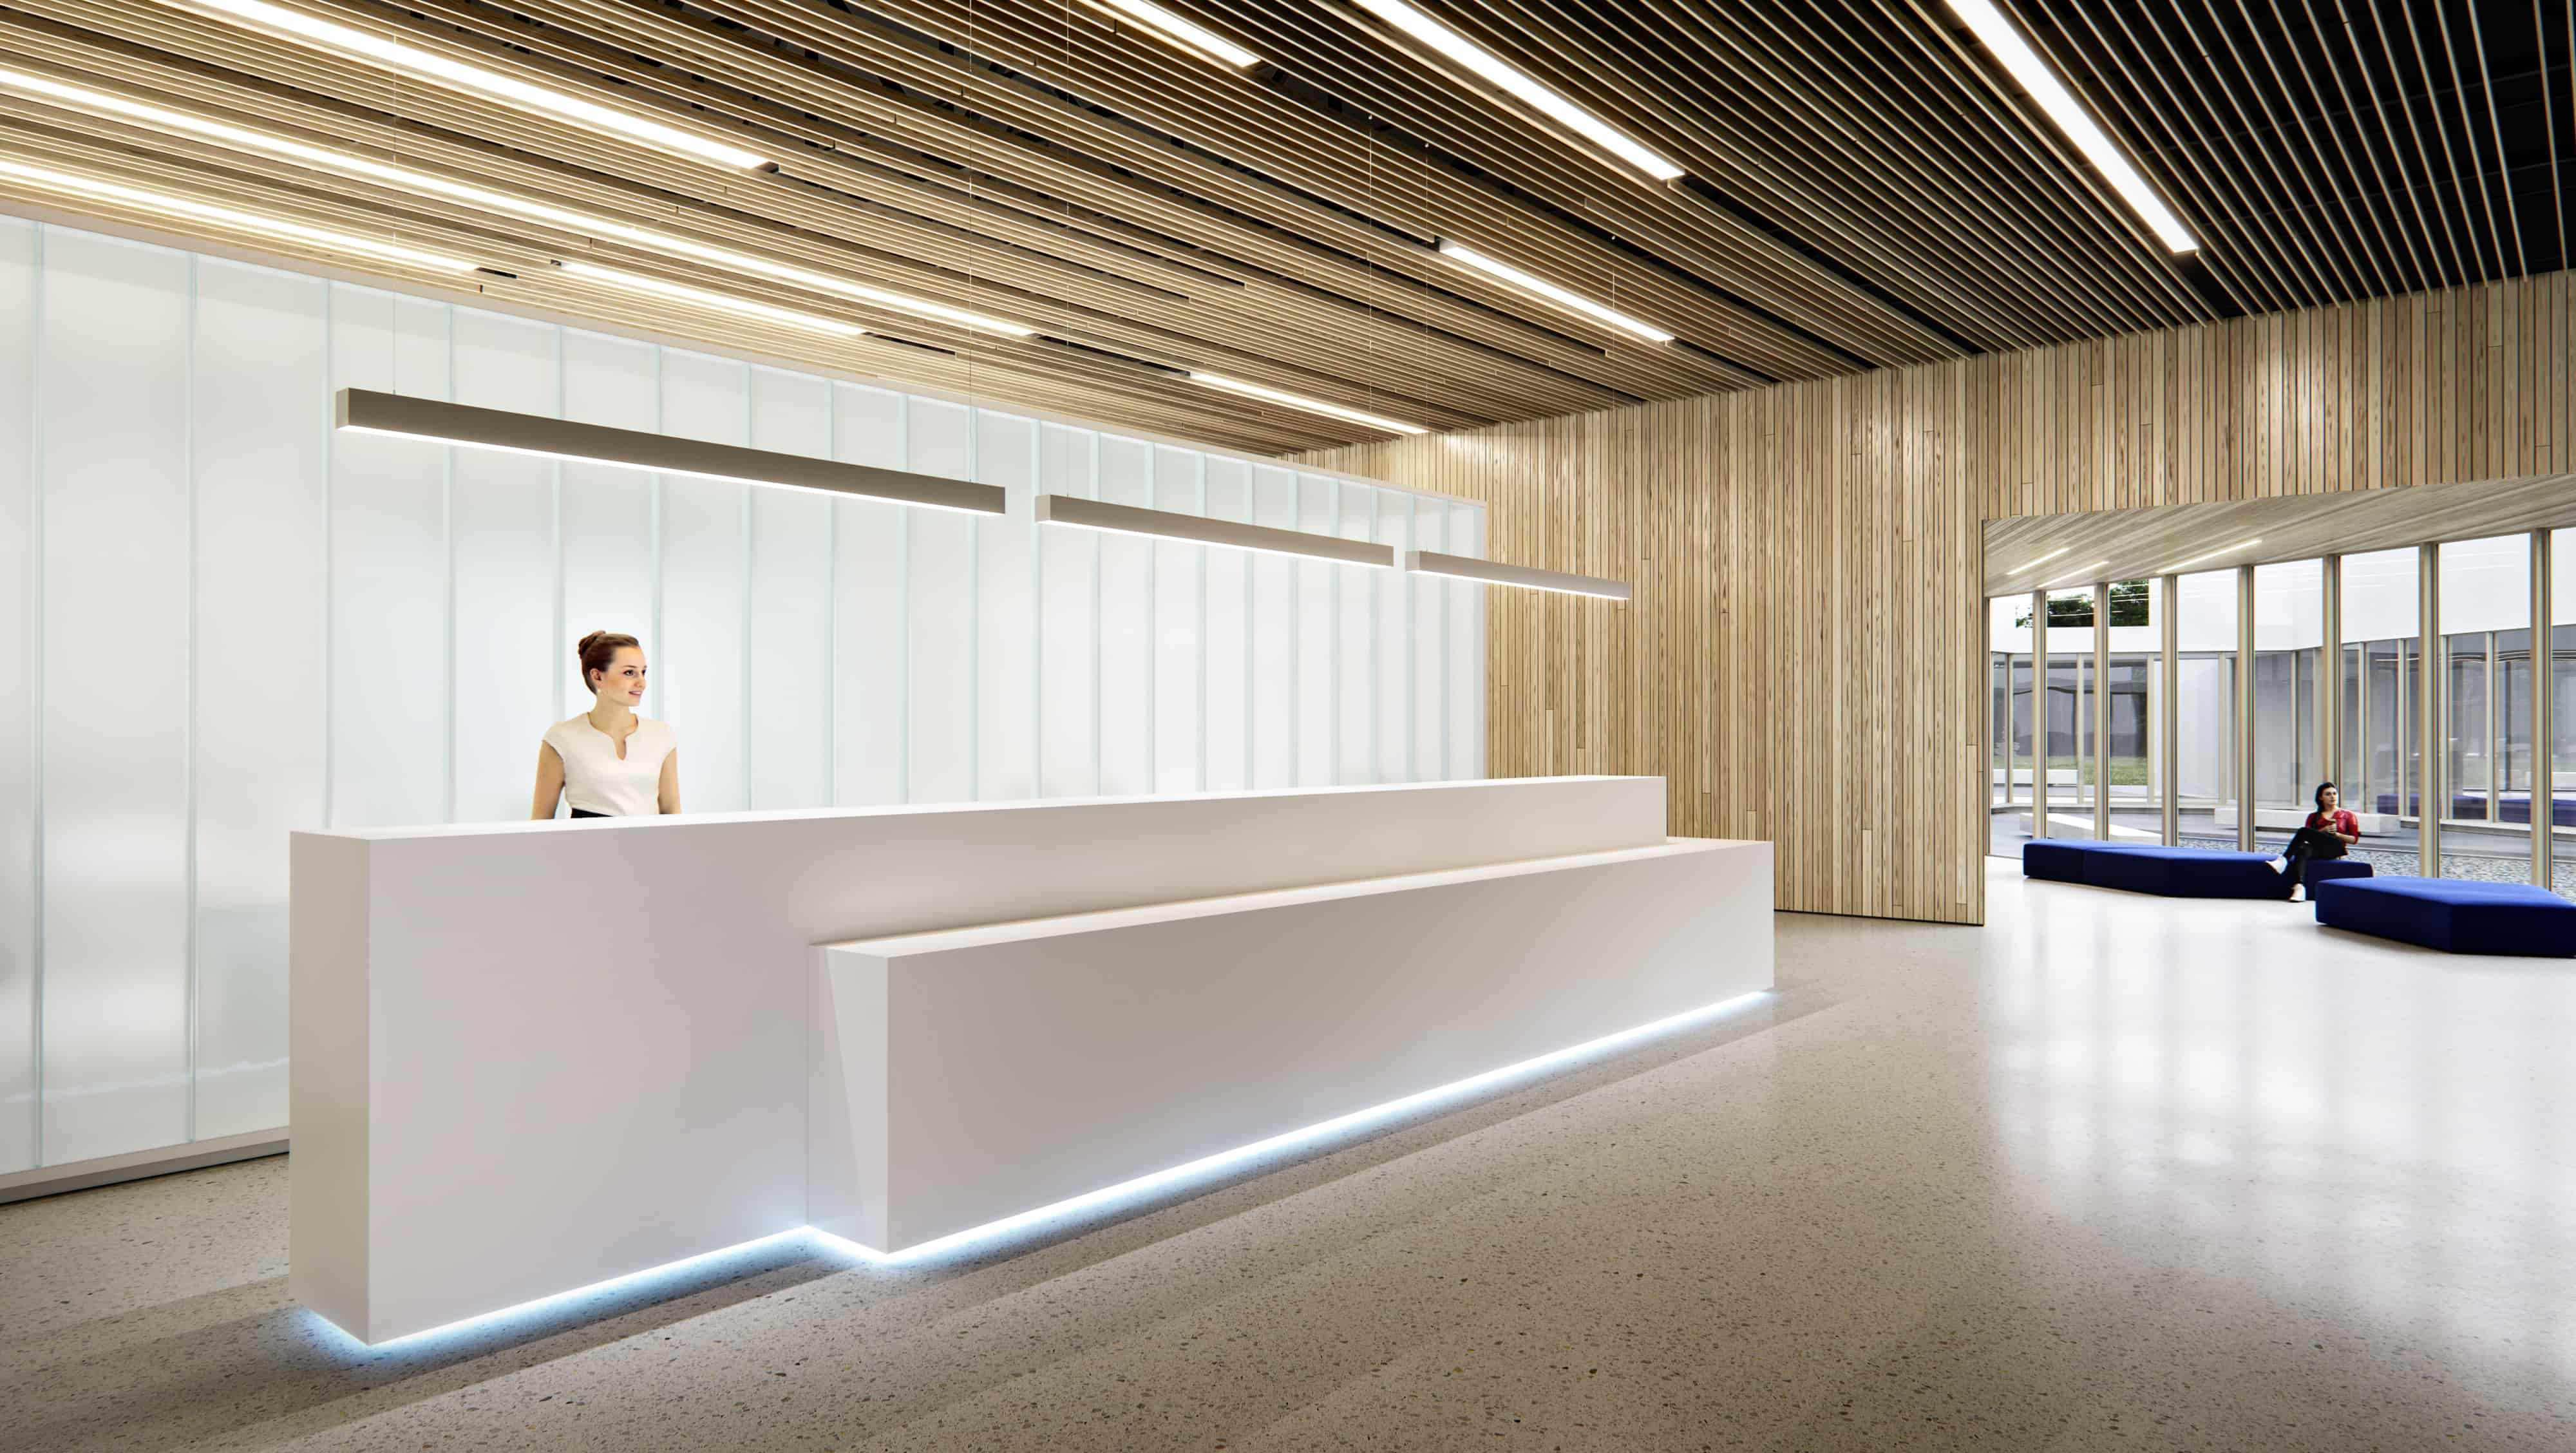 IT office building reception hall interior design perspective